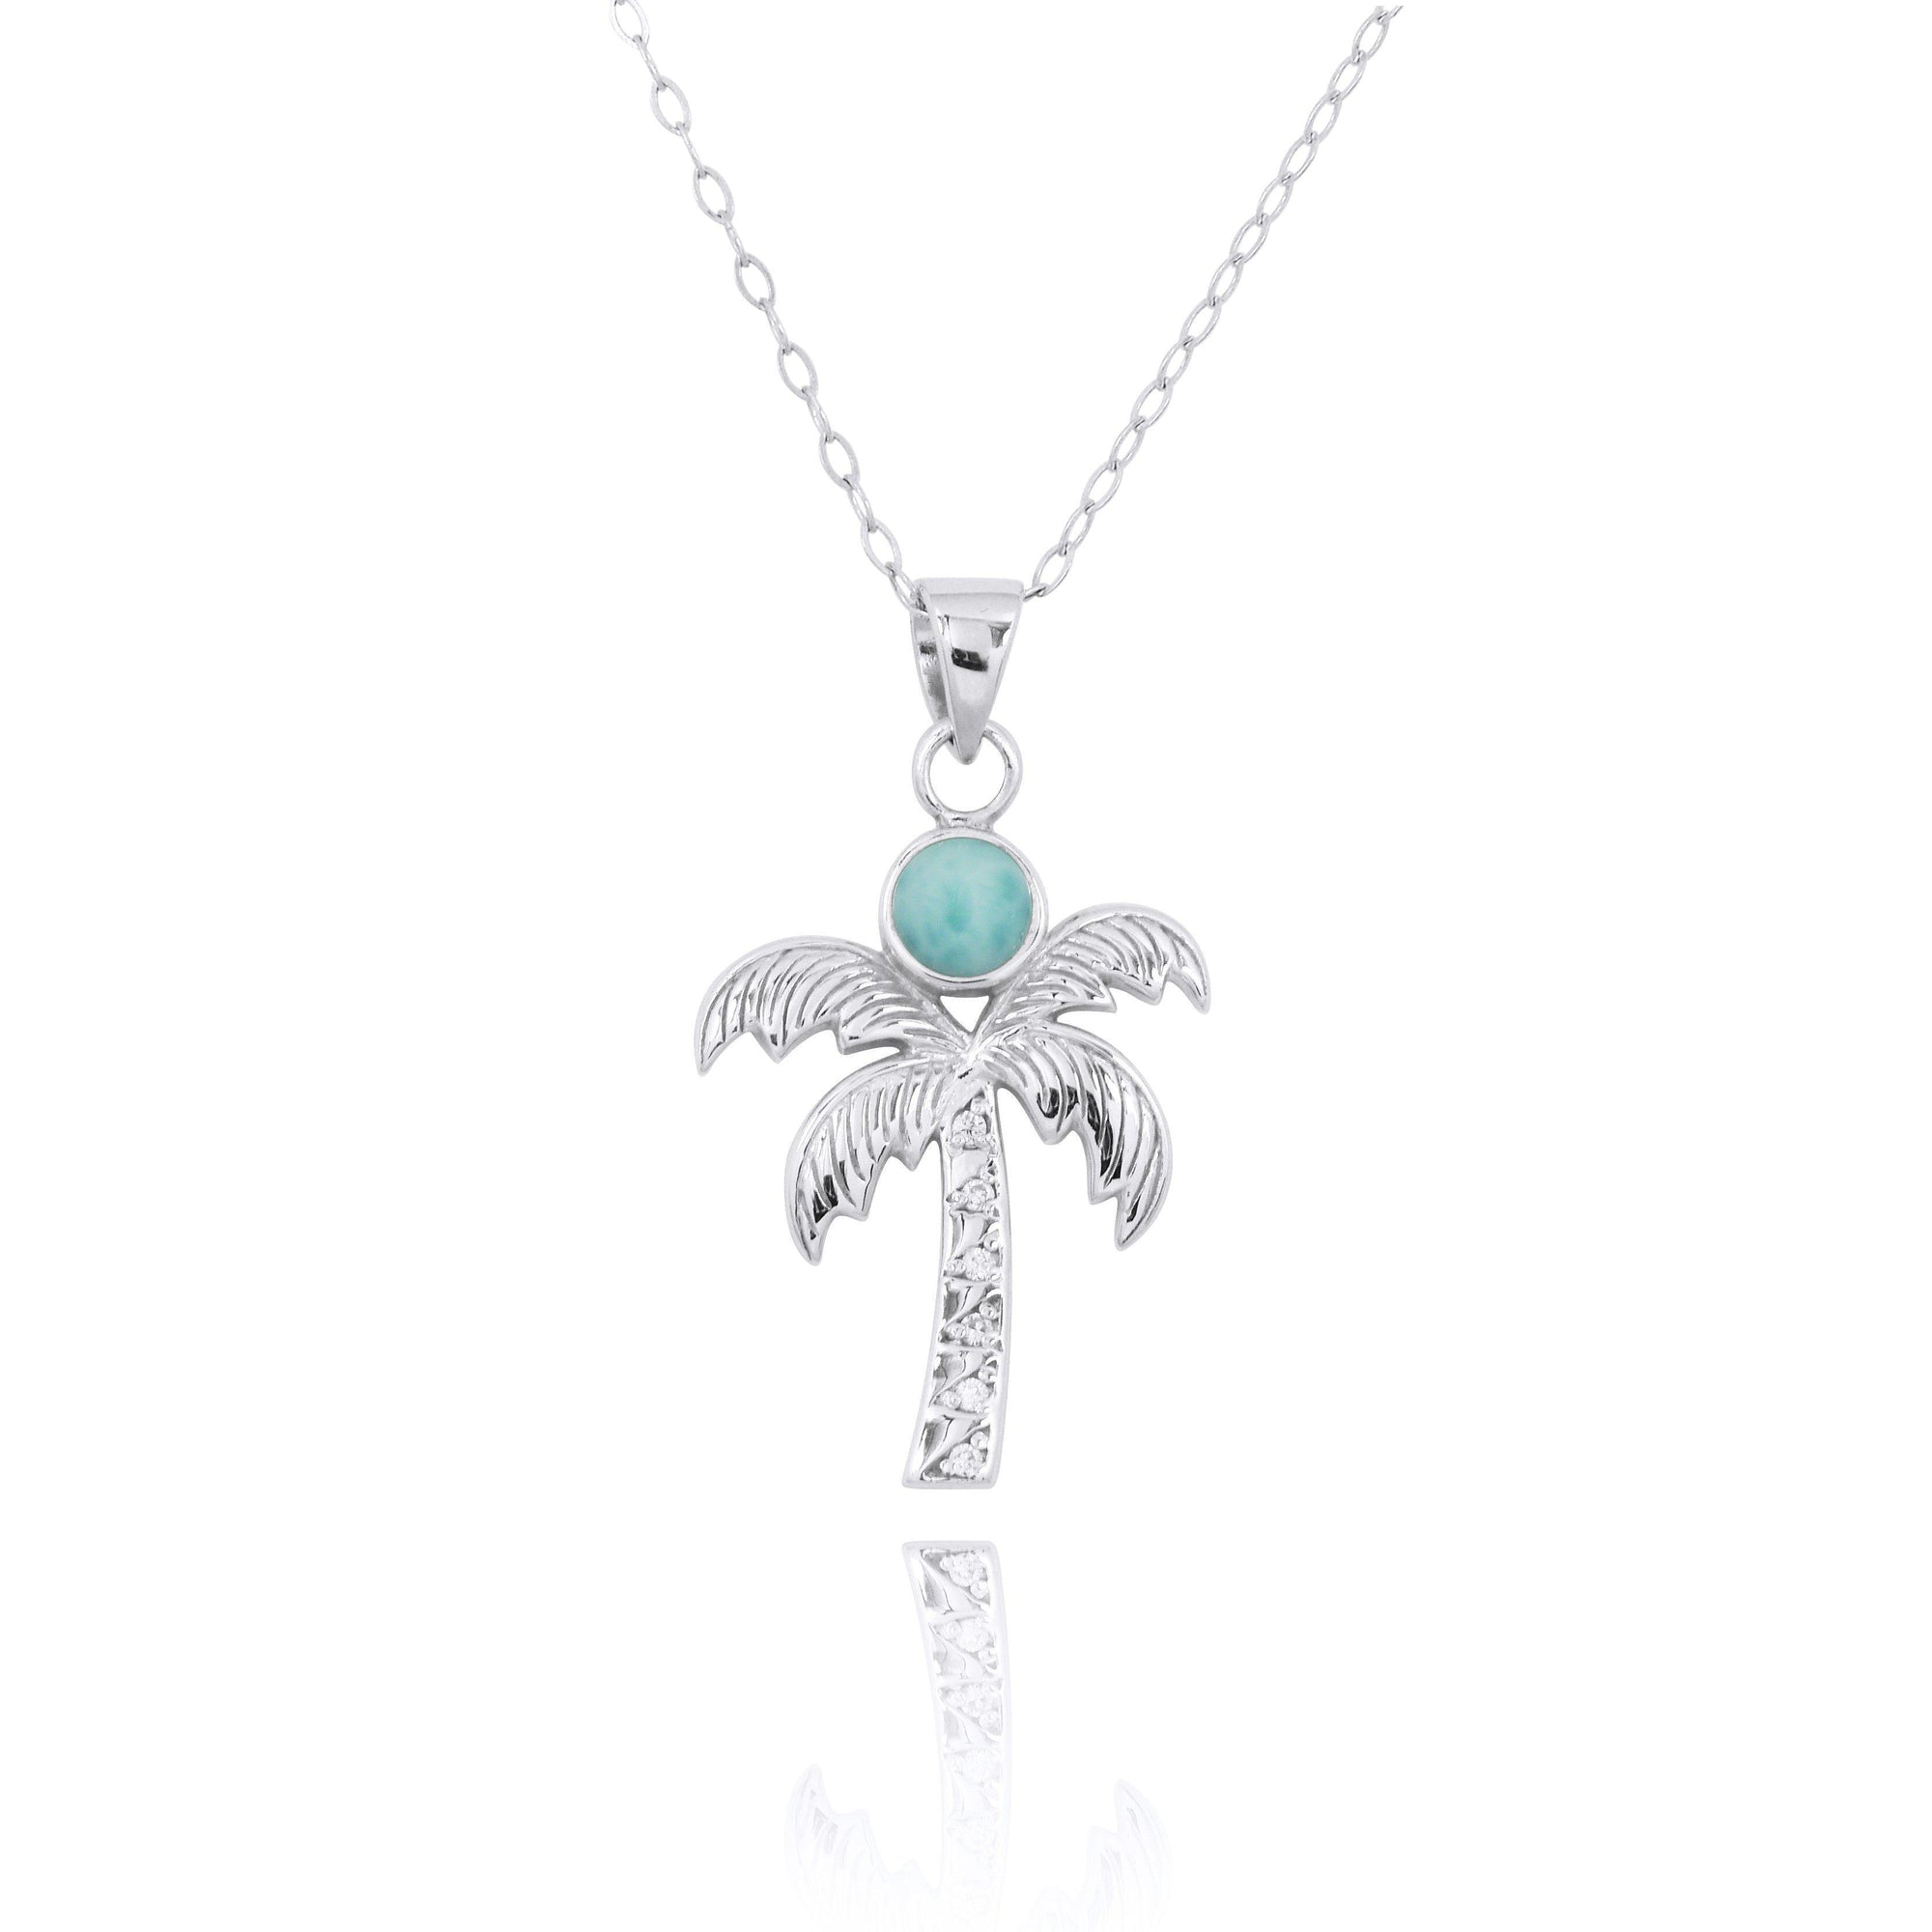 Sterling Silver Palm Tree Pendant Necklace with Larimar and White Topaz